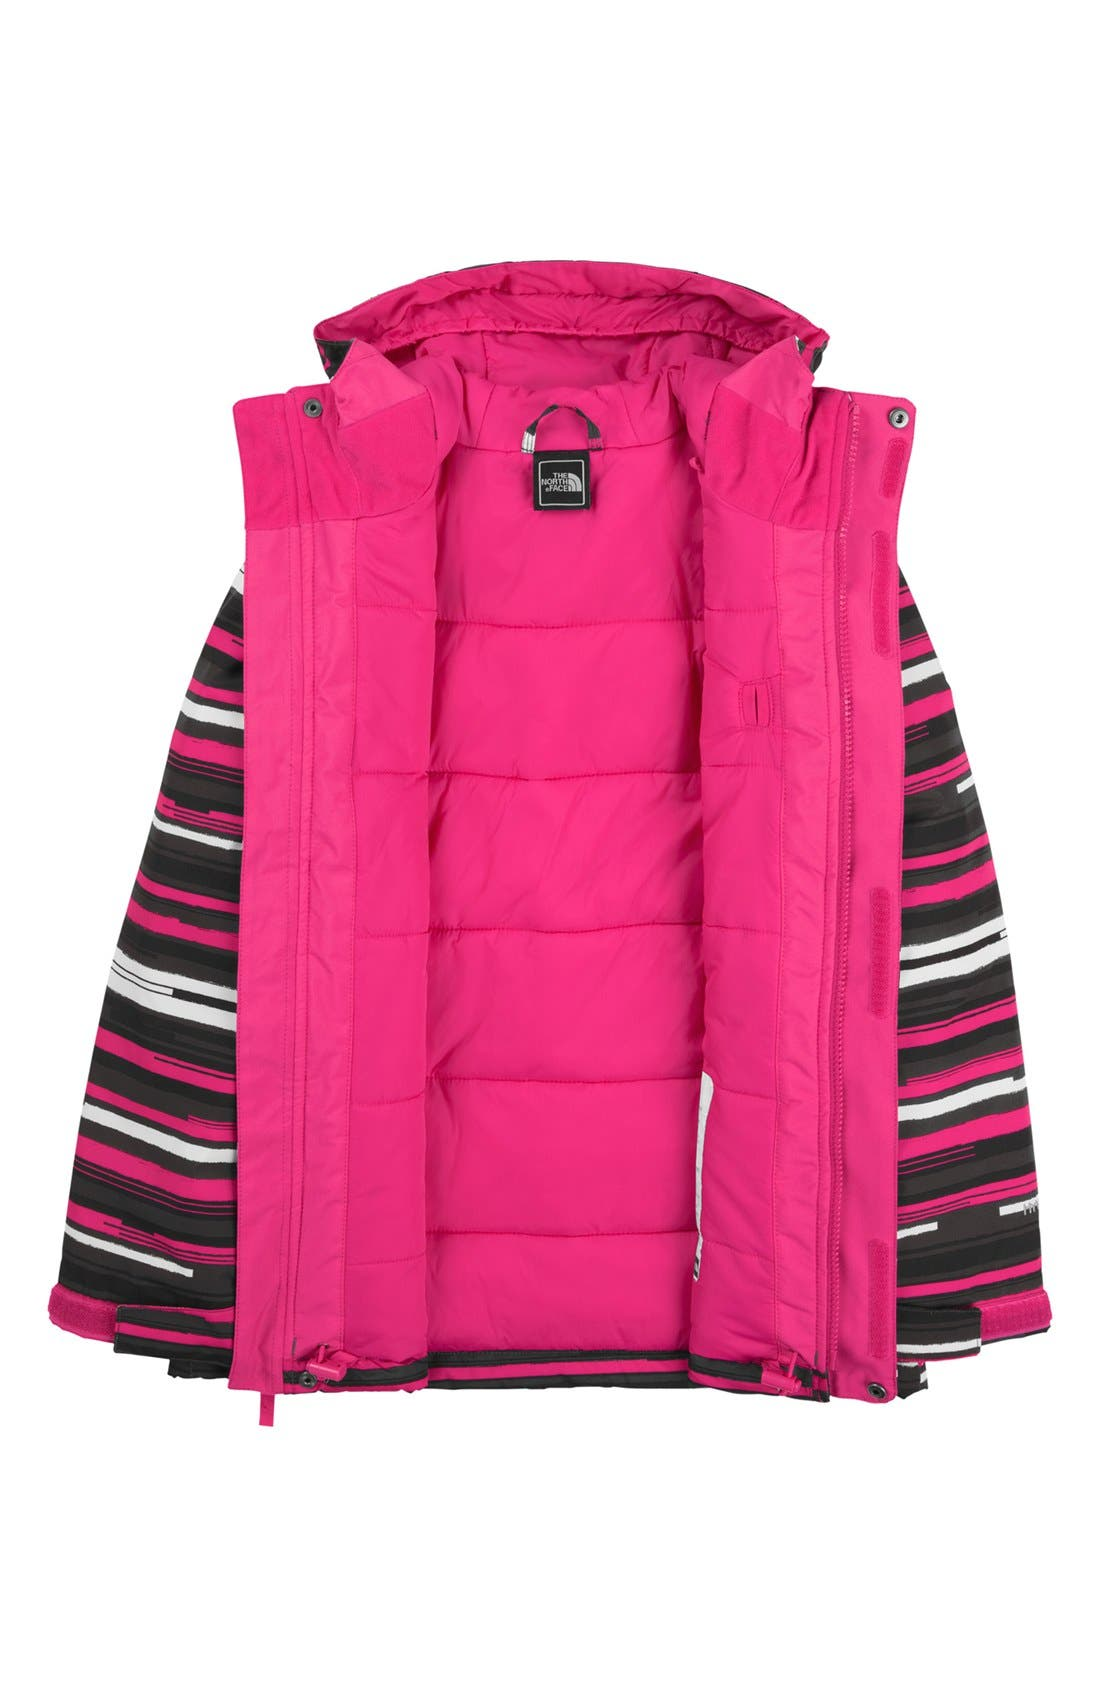 Alternate Image 2  - The North Face 'Adalee' Jacket (Little Girls & Big Girls)